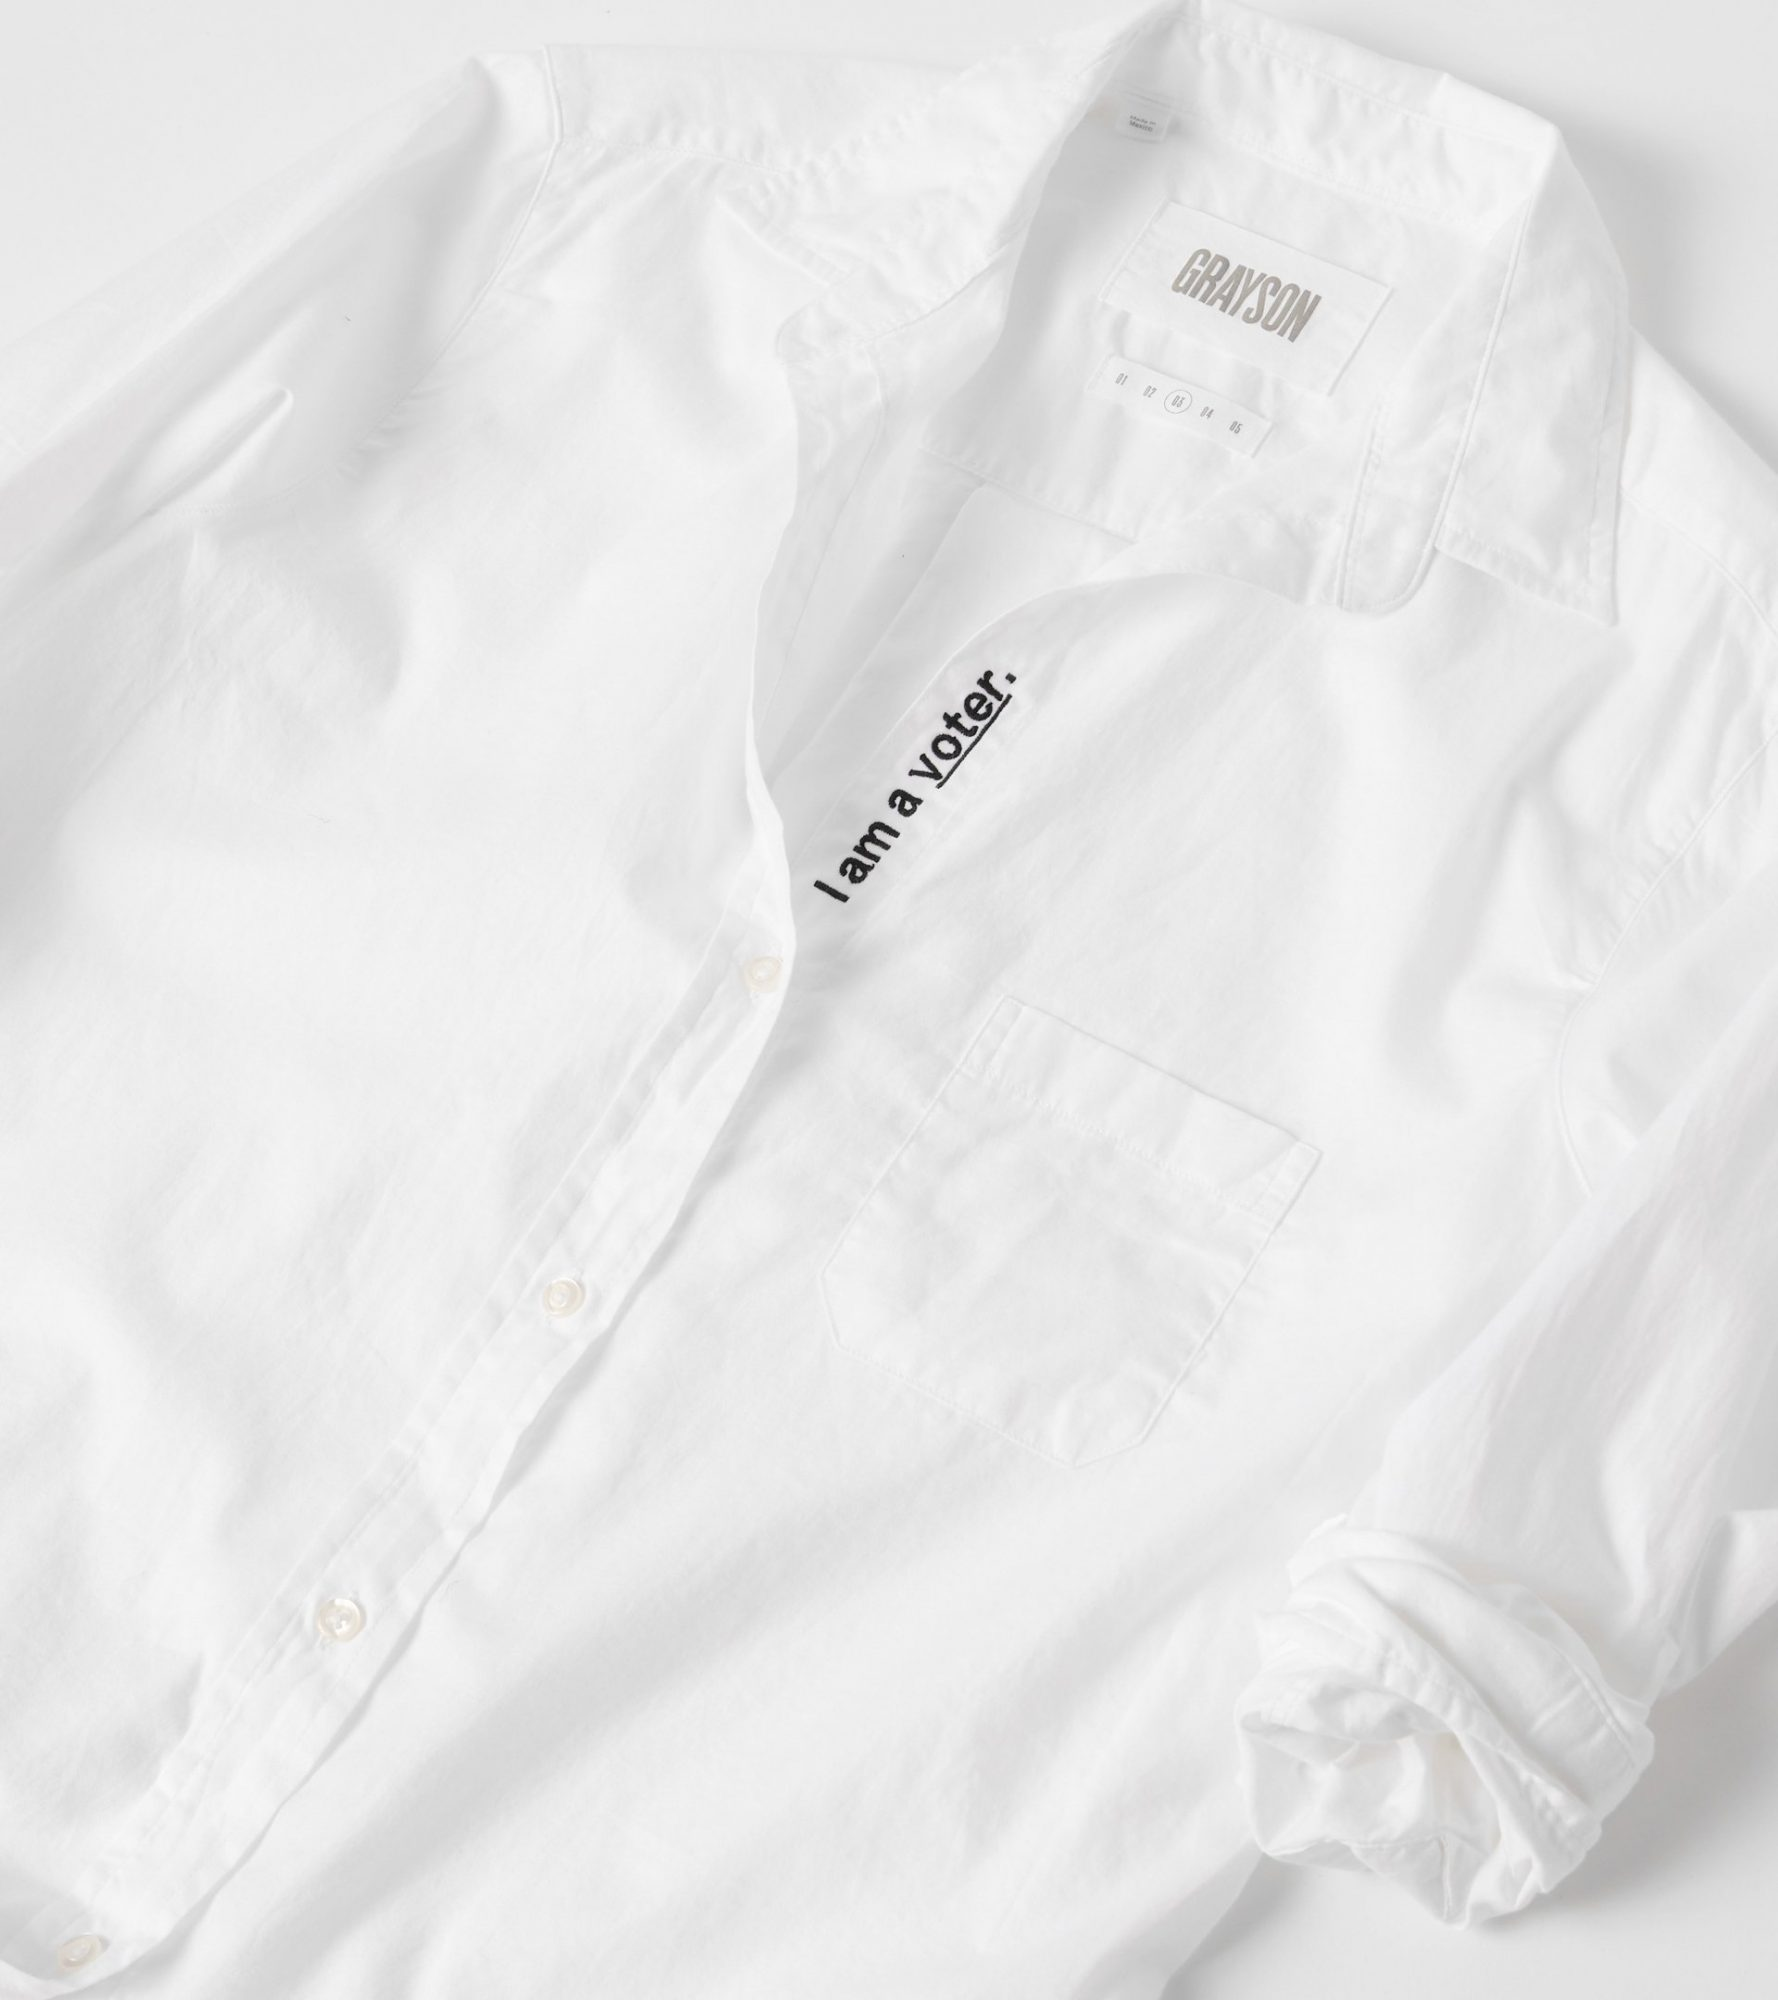 White button down shirt from Grayson